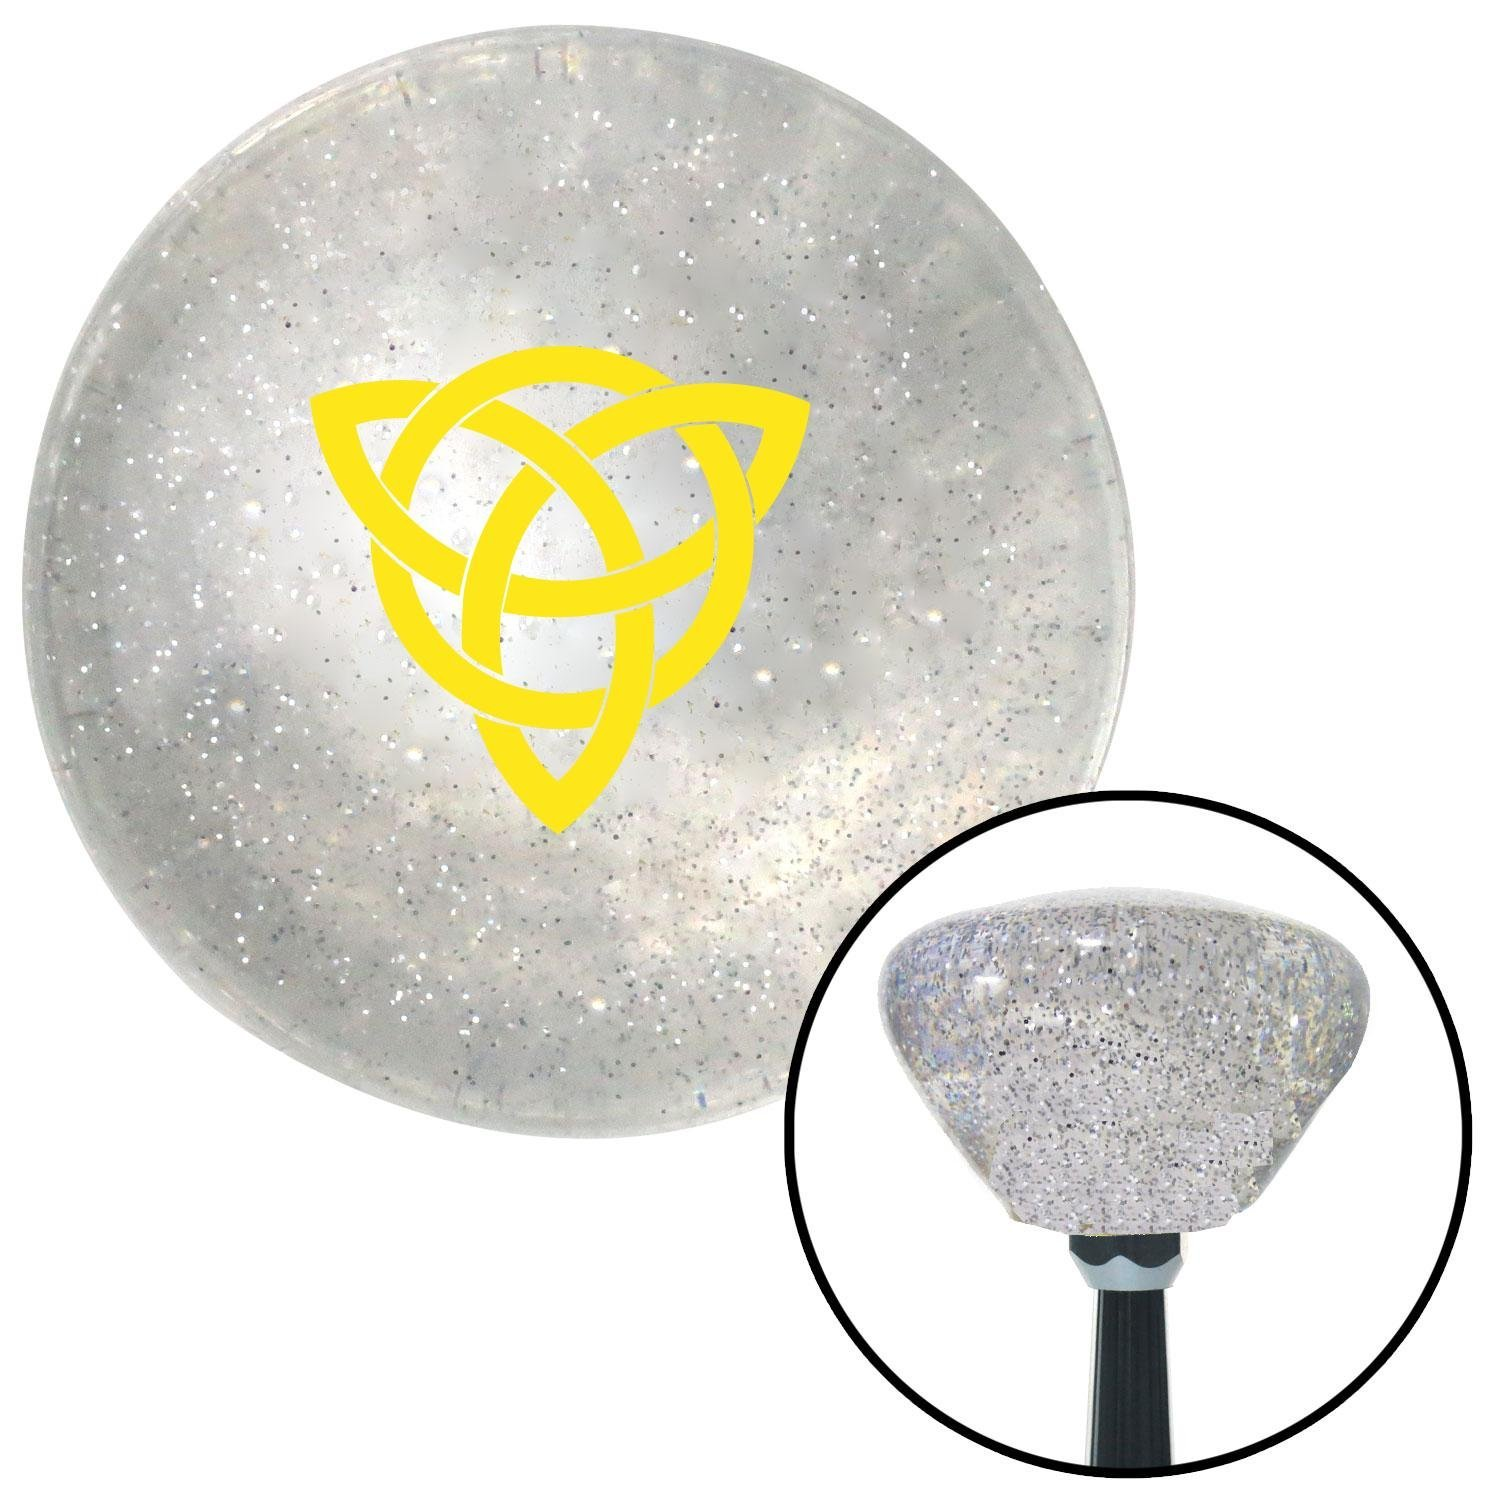 American Shifter 162467 Clear Retro Metal Flake Shift Knob with M16 x 1.5 Insert Yellow Celtic Design